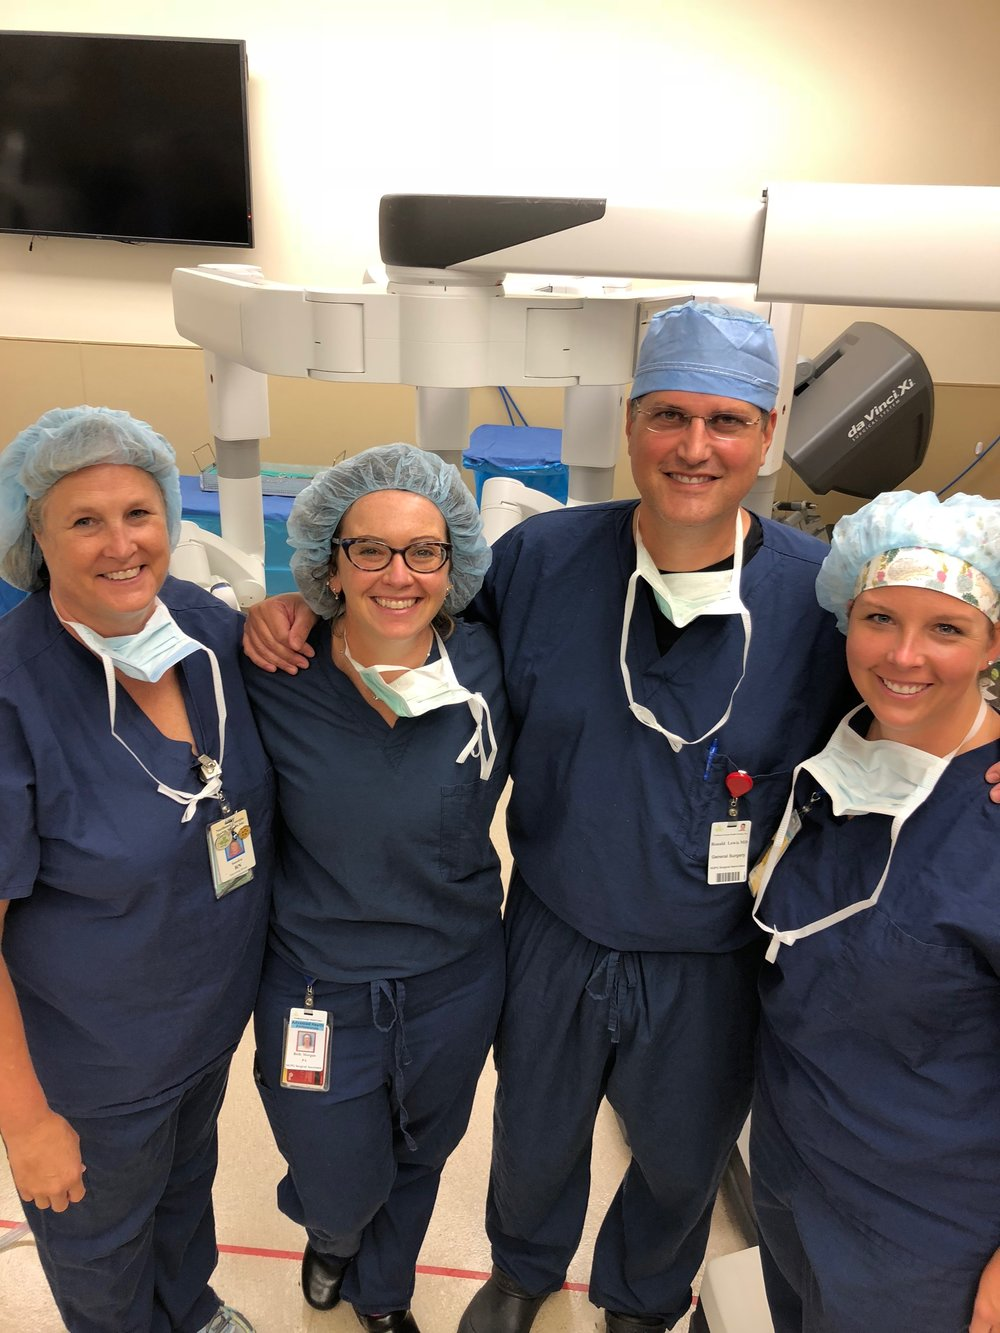 3 Year Anniversary with Robotic Surgery - June 29, 2018Our team celebrated our 3rd year and 300th case with robotic surgery.